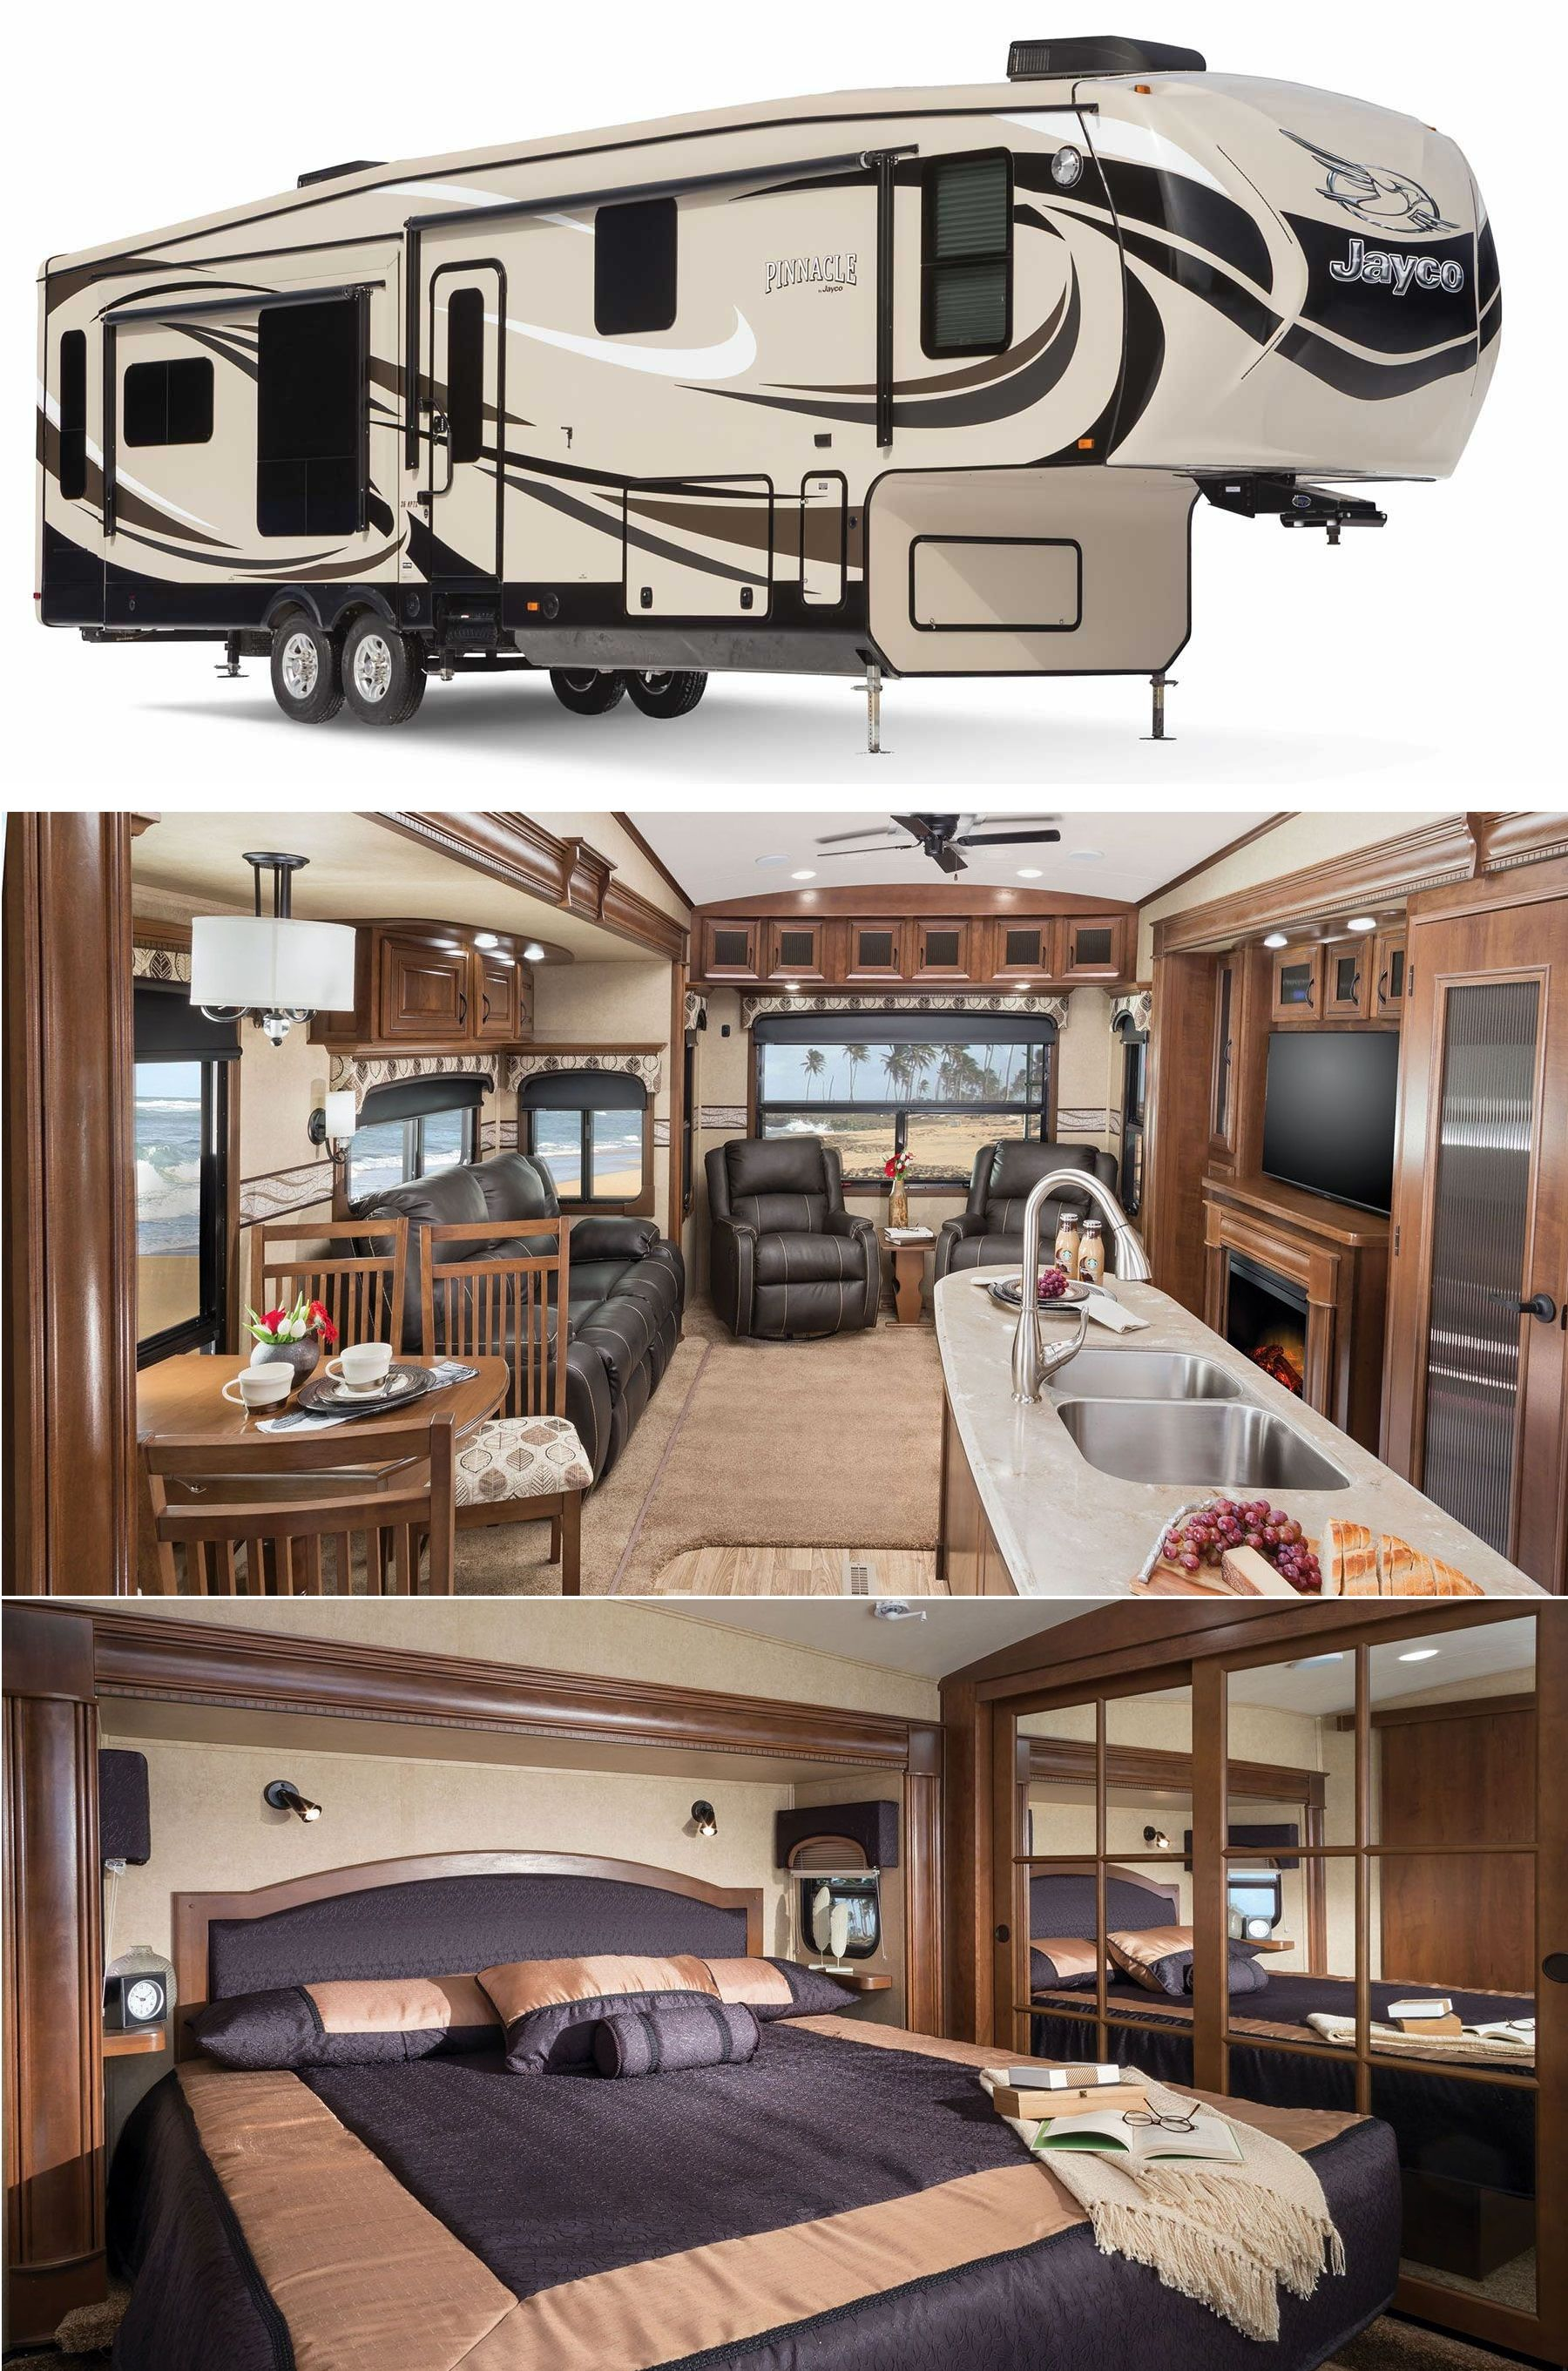 2015 Pinnacle The Luxury Suite Fifth Wheel Http Jayco Com